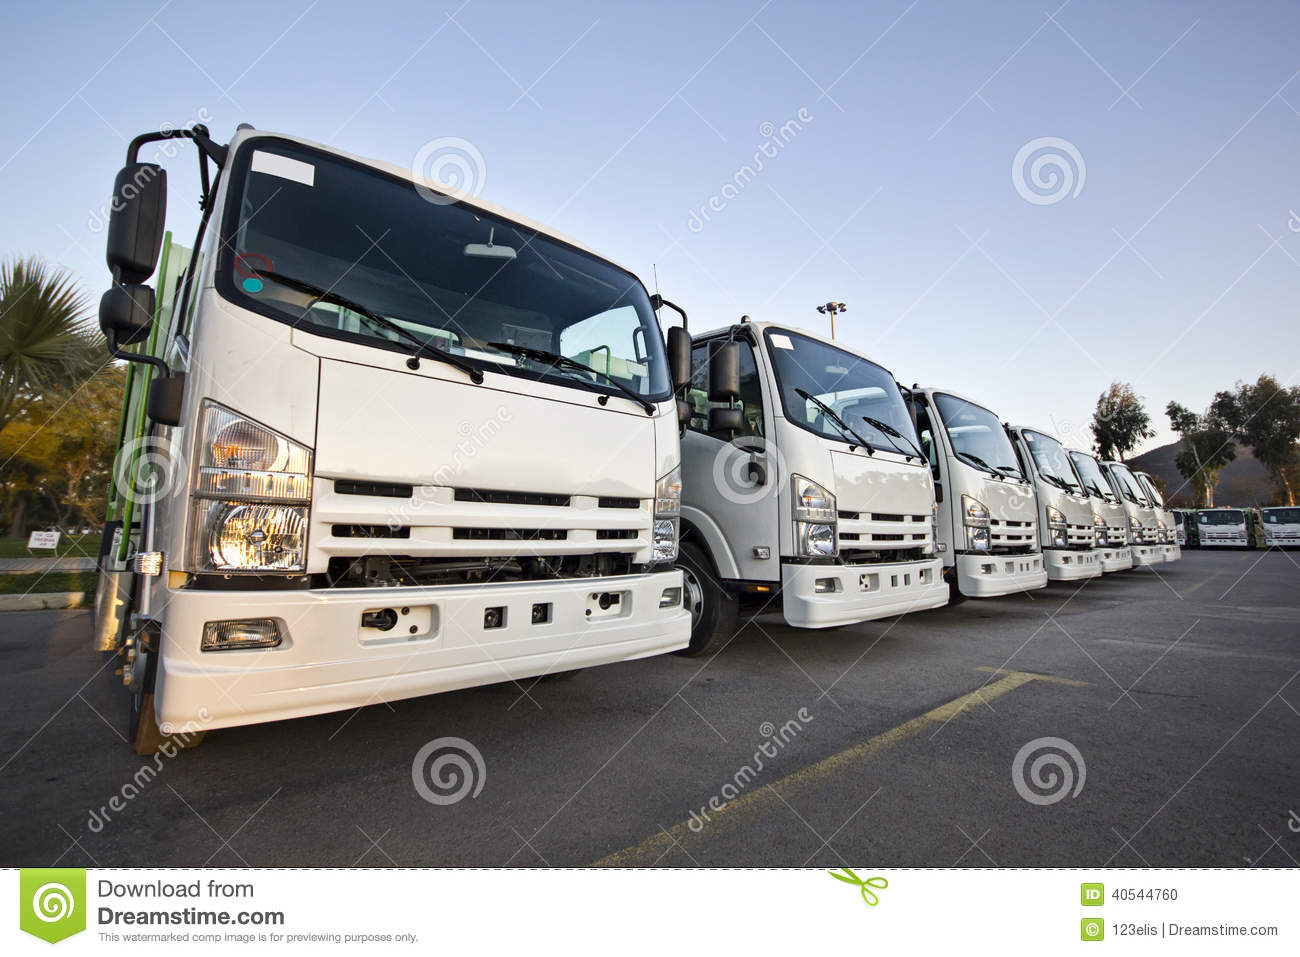 Download Trucks in a row stock photo. Image of dealership, industry - 40544760